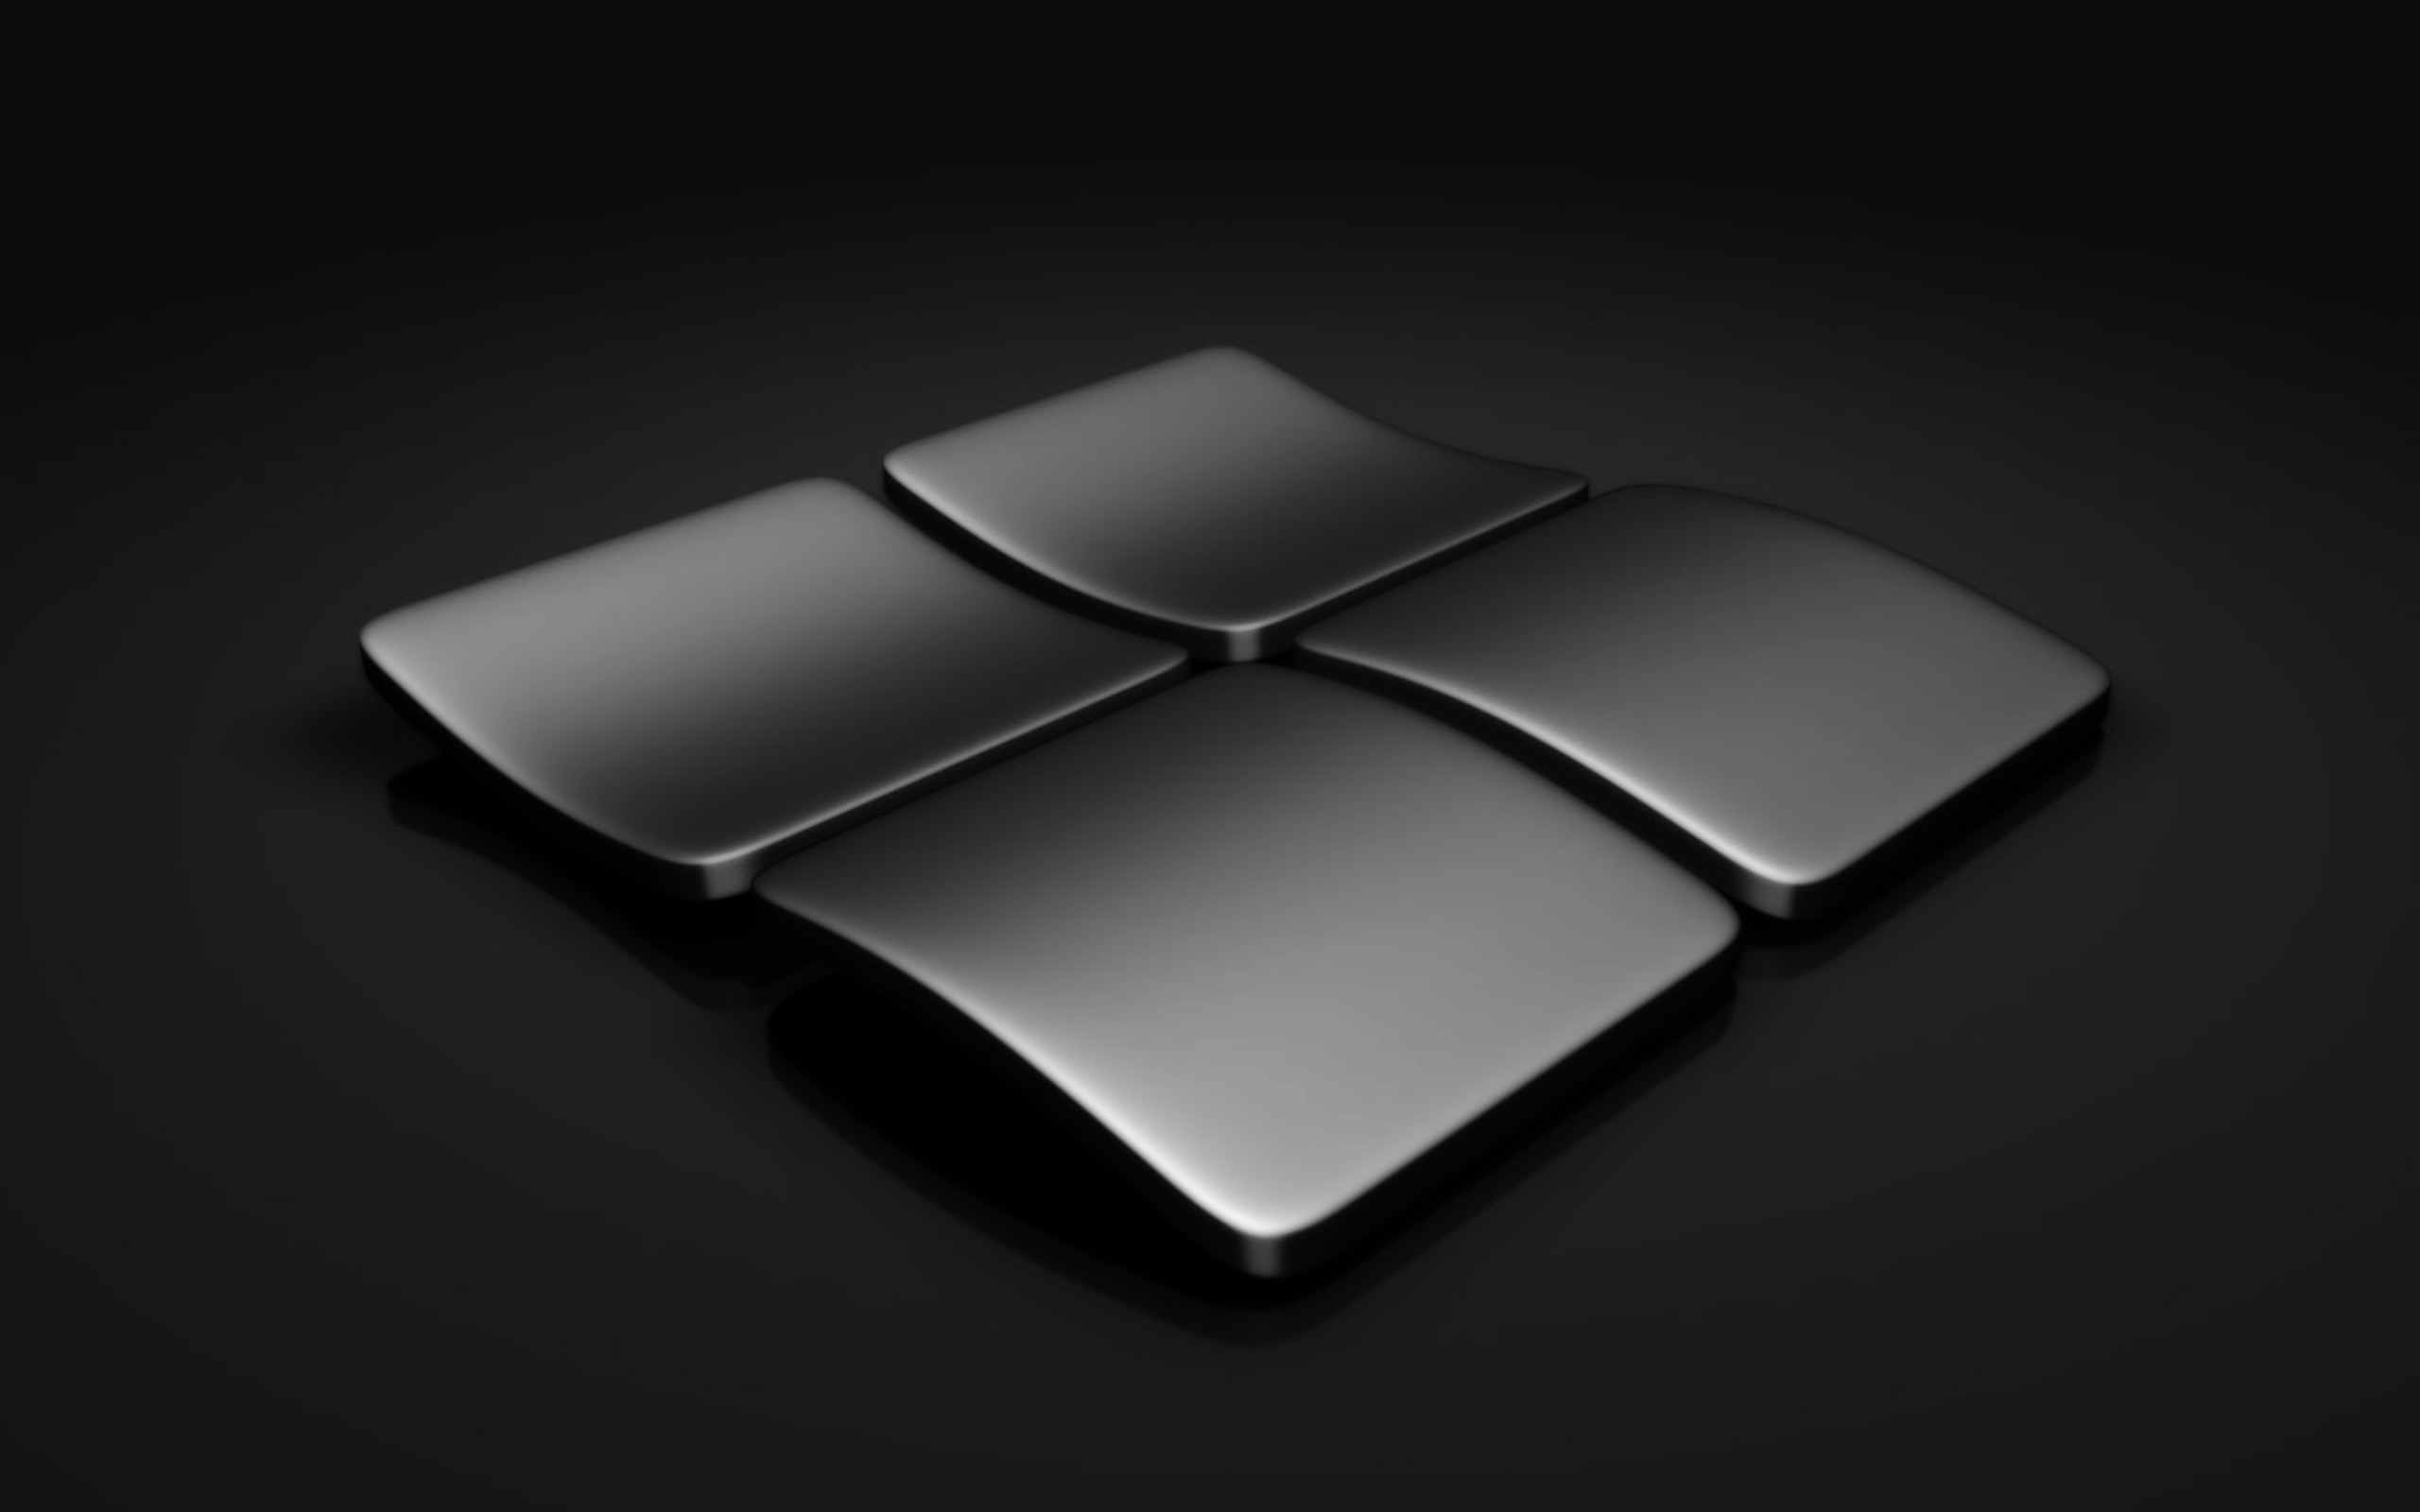 Microsoft Windows 10 Wallpaper Black Logo View HD 2560x1600